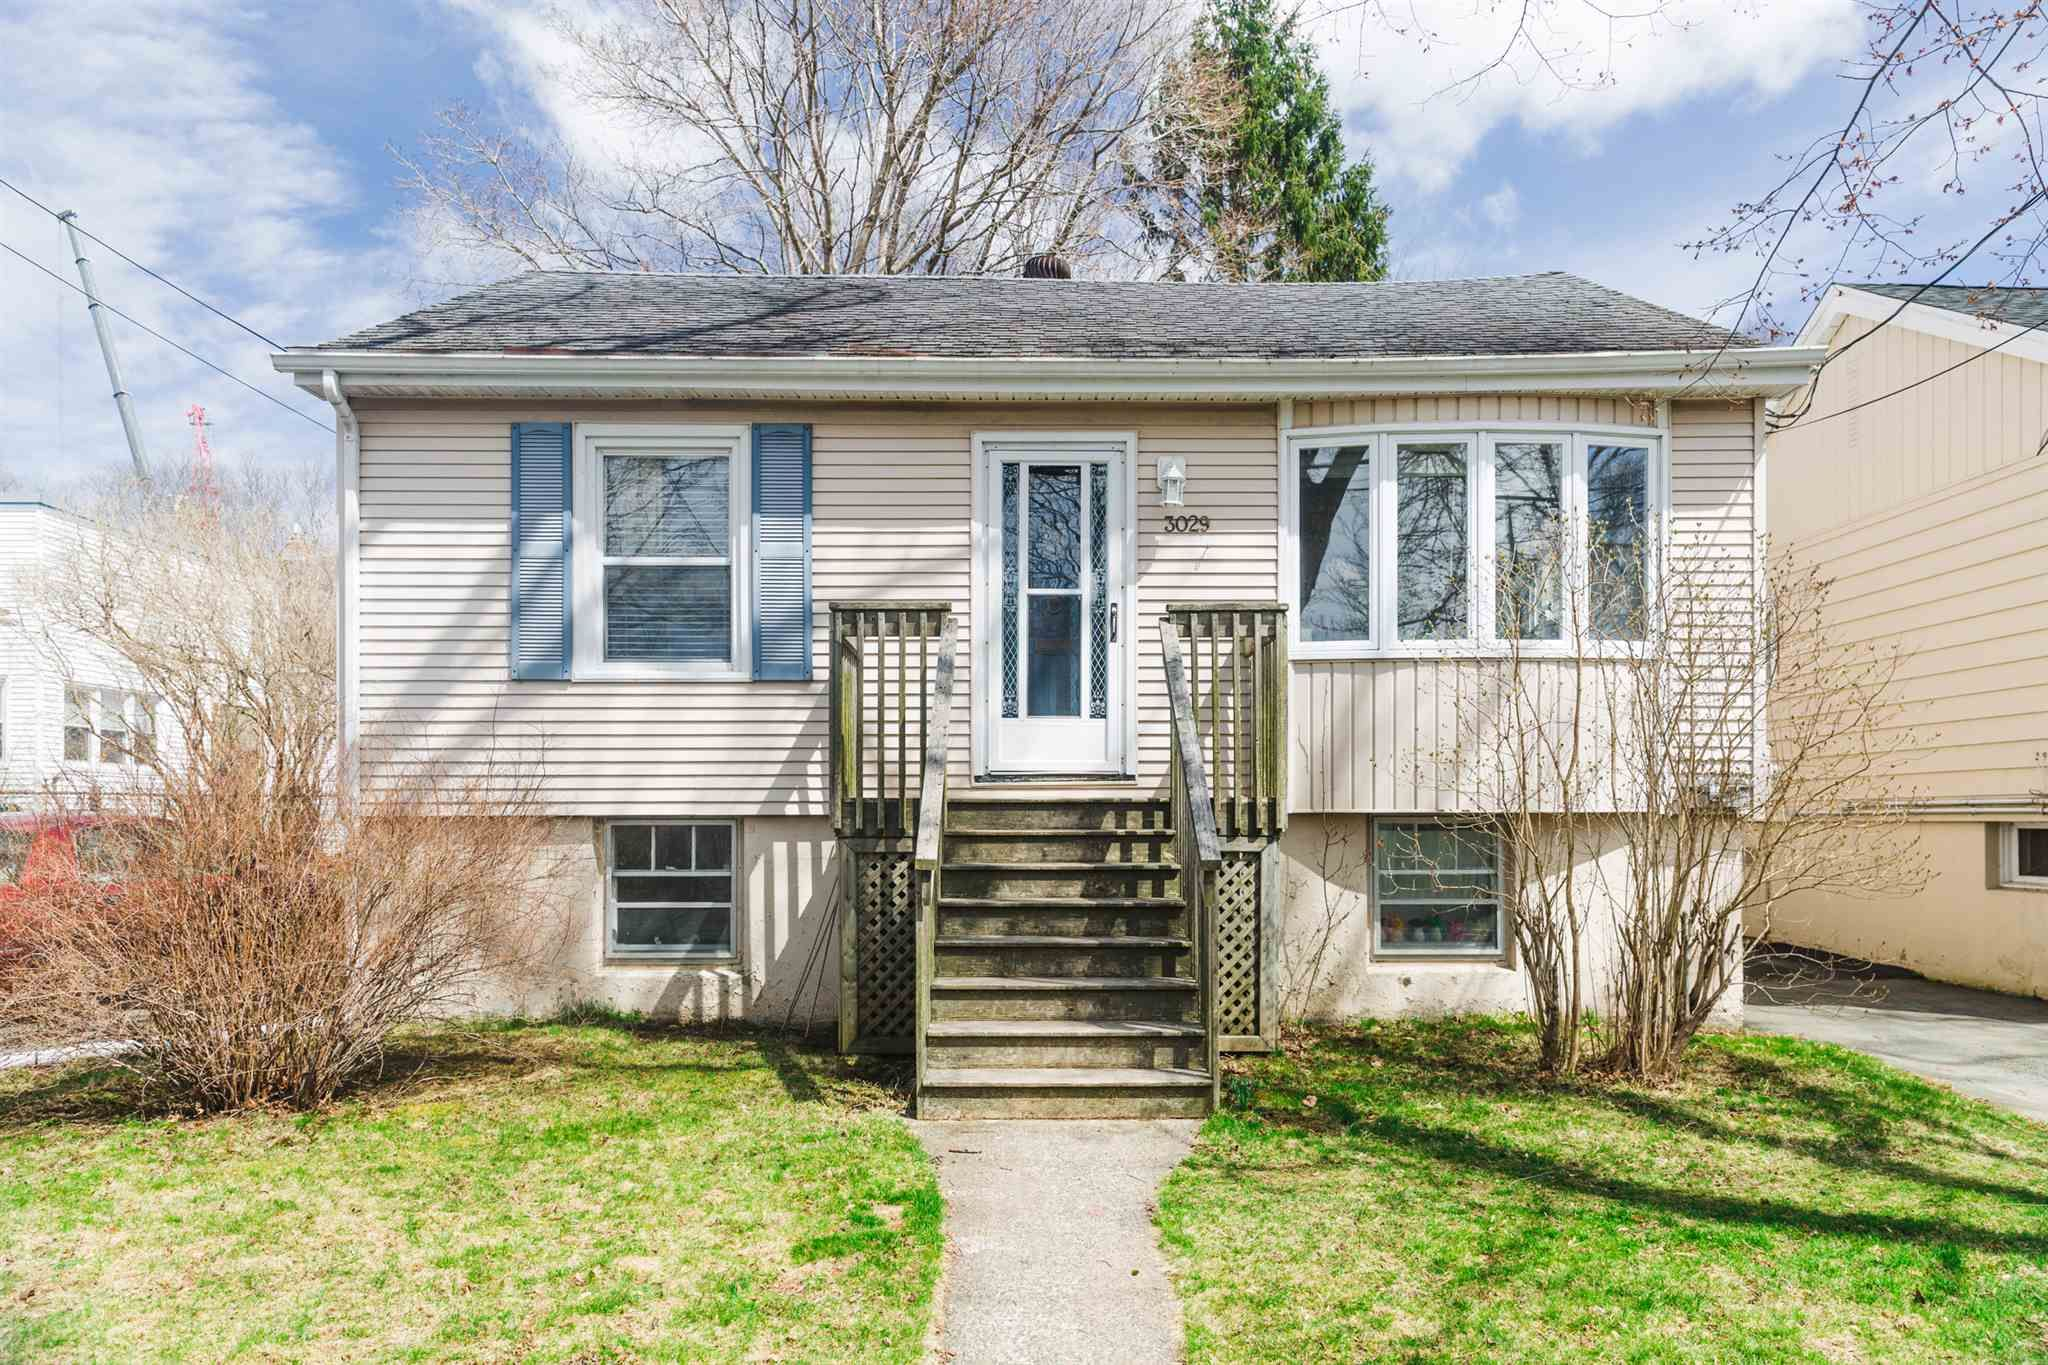 Main Photo: 3027/29 Connolly Street in Halifax Peninsula: 4-Halifax West Multi-Family for sale (Halifax-Dartmouth)  : MLS®# 202109475